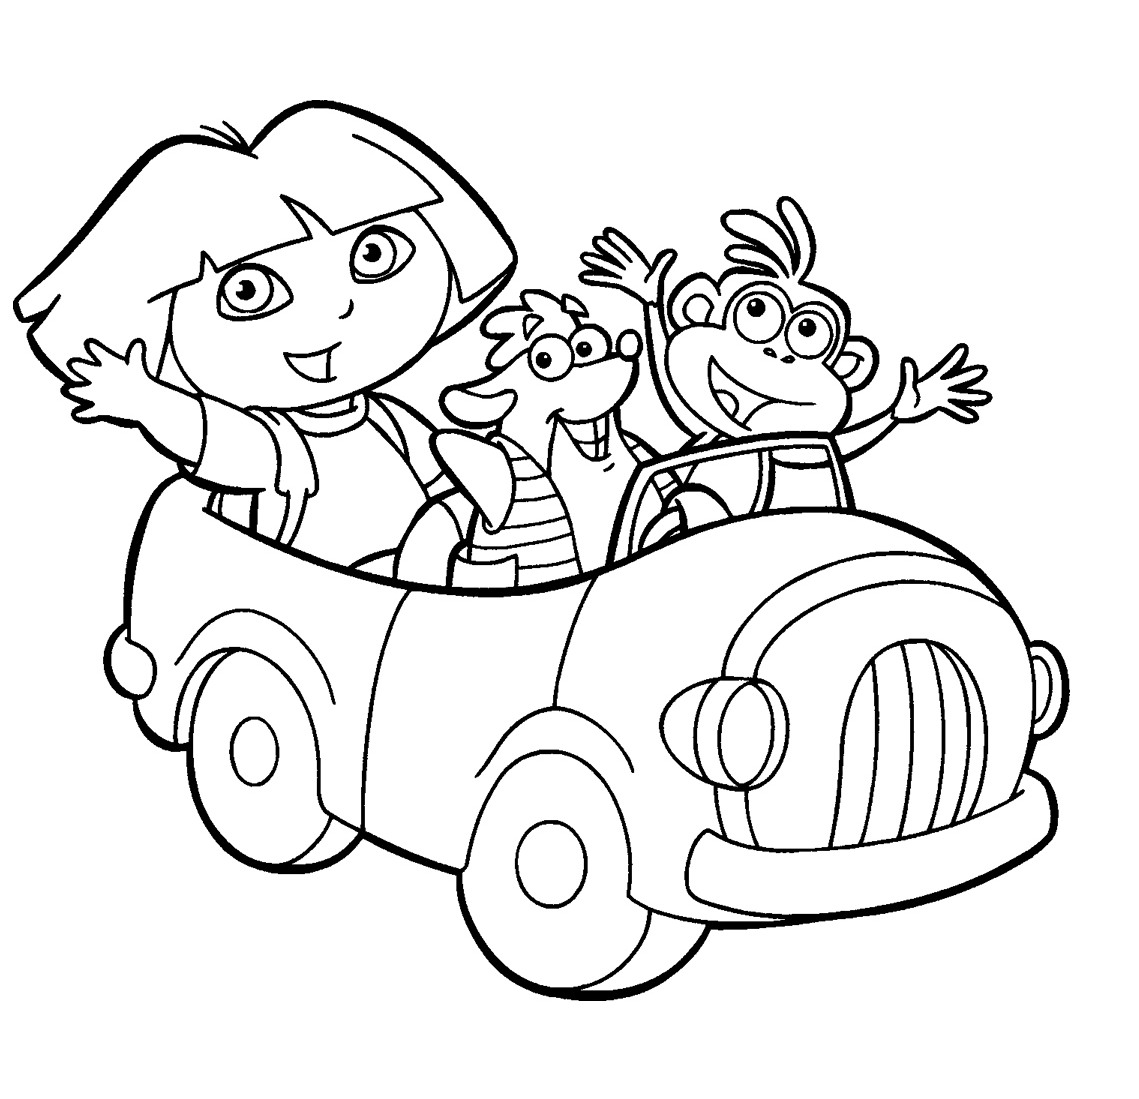 14 Dora The Explorer Coloring Page To Print